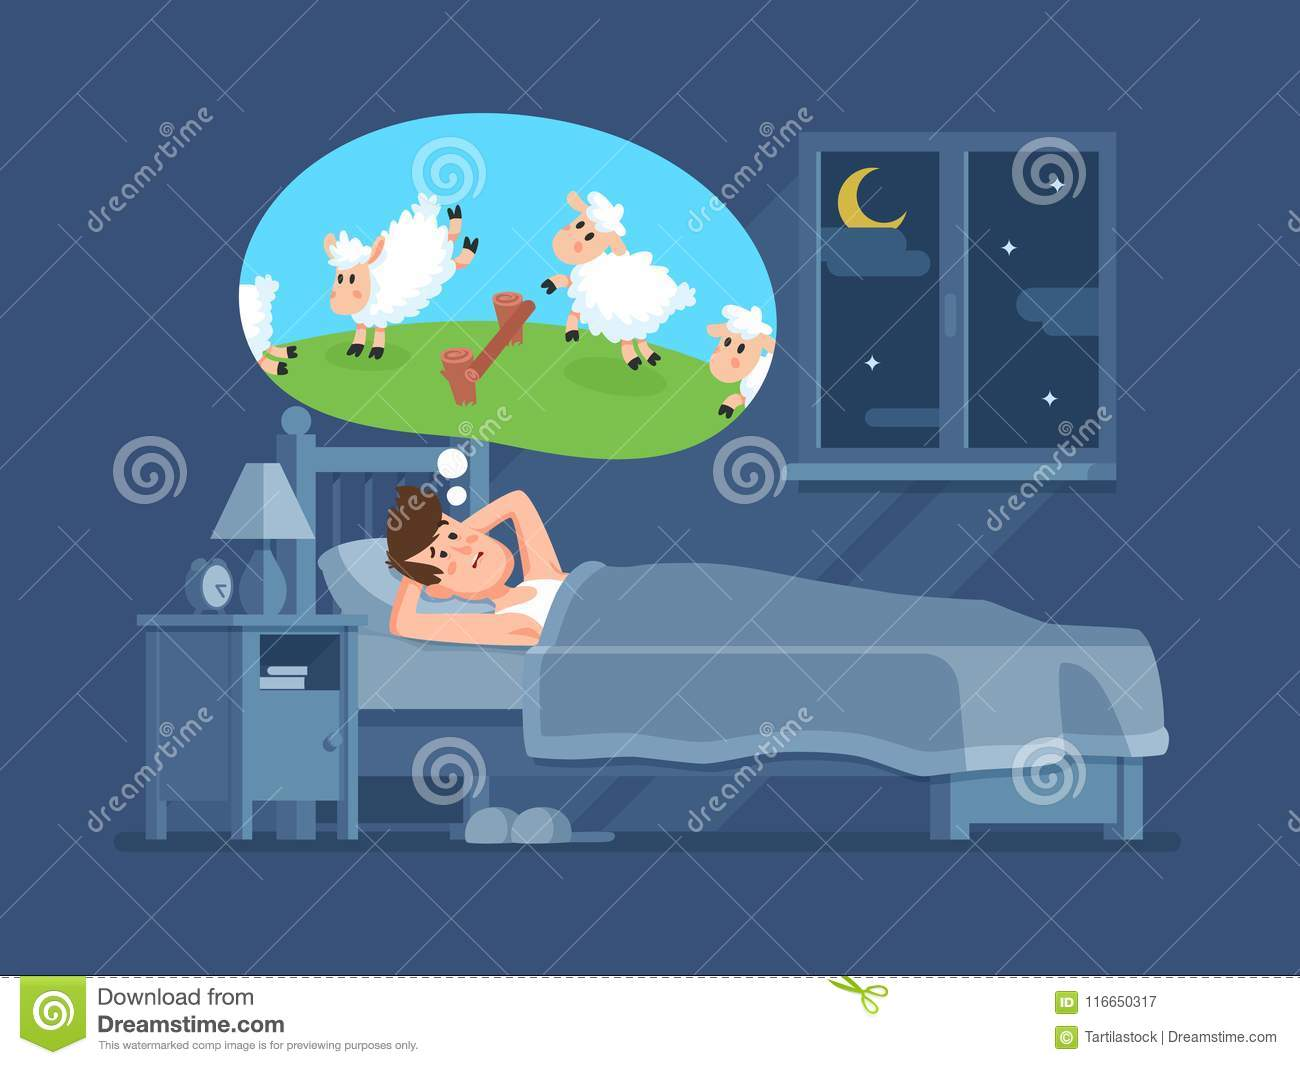 Sleepless Man In Bed Trying To Fall Asleep Counting Sheeps